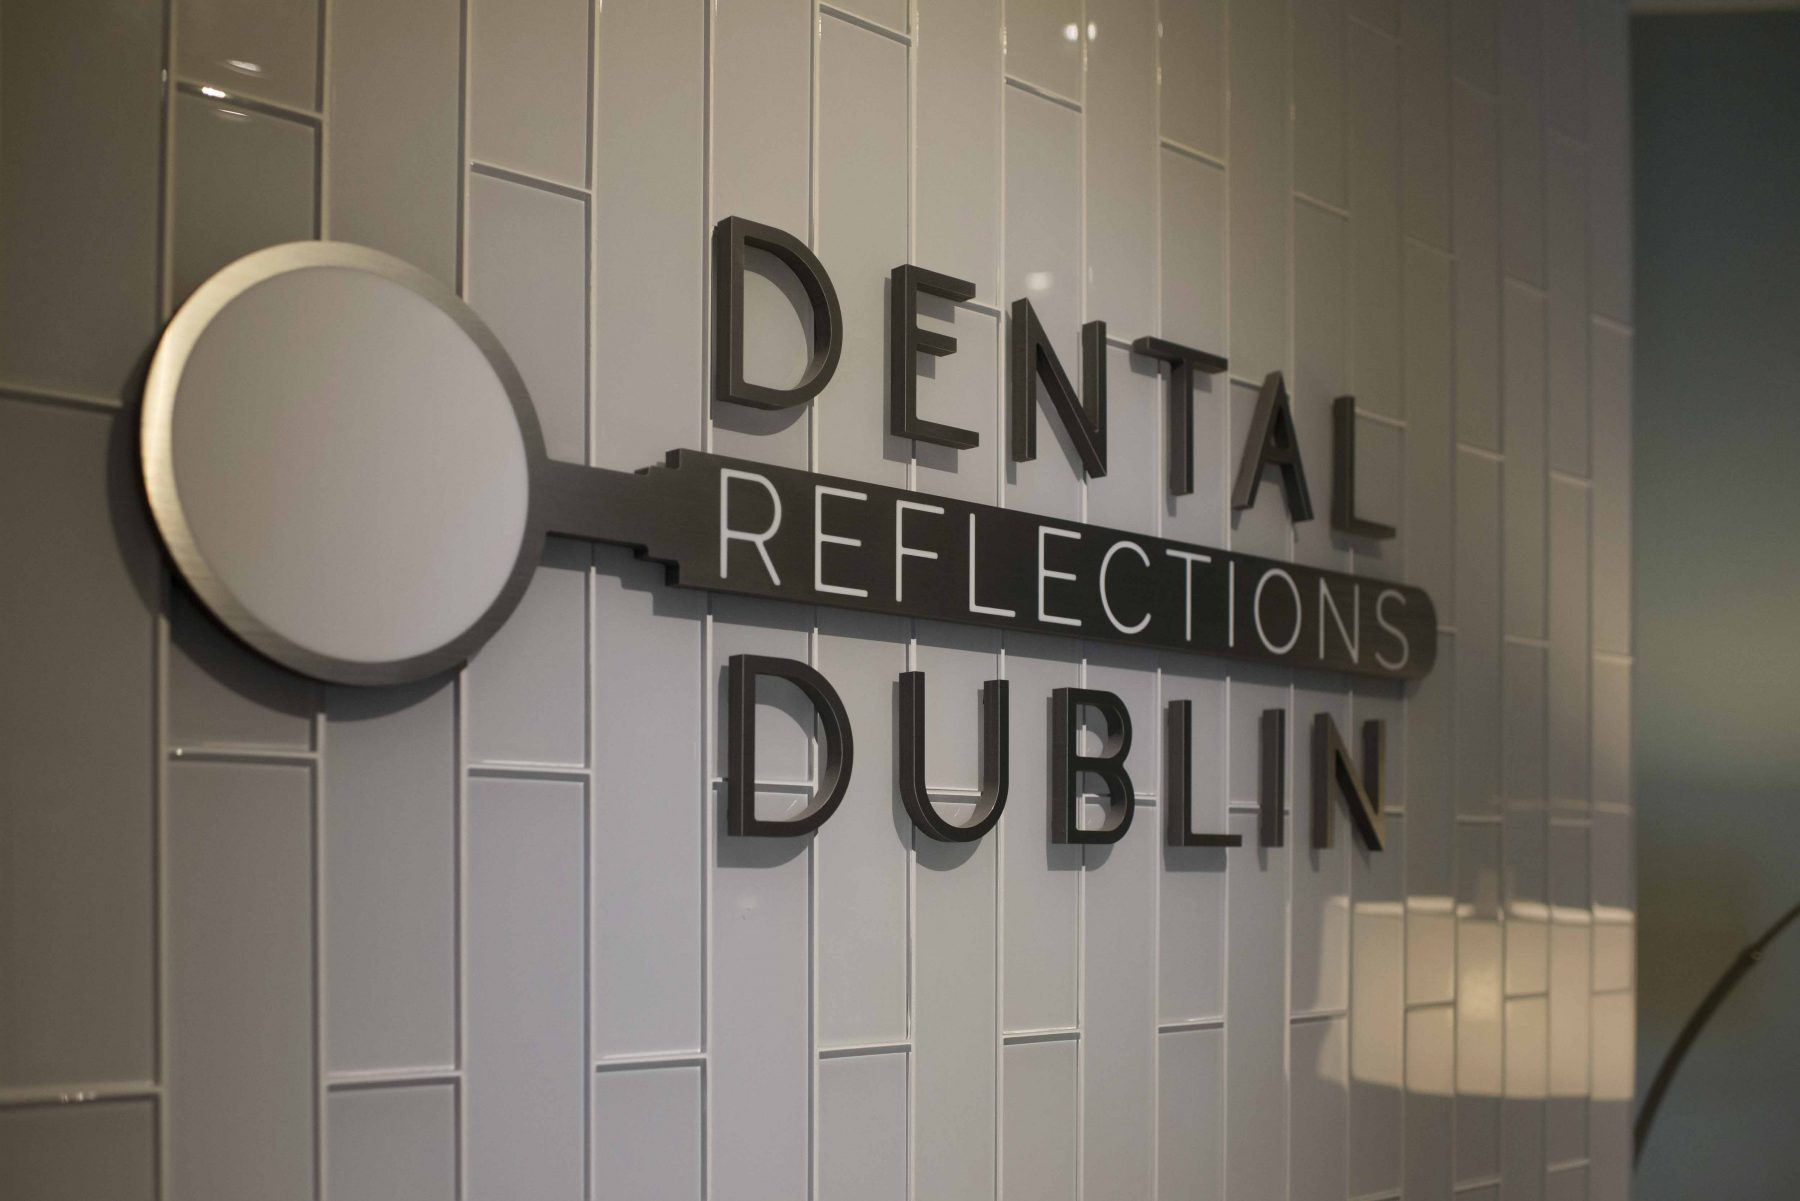 gray wall of tiles with Dental Reflections Dublin logo on it